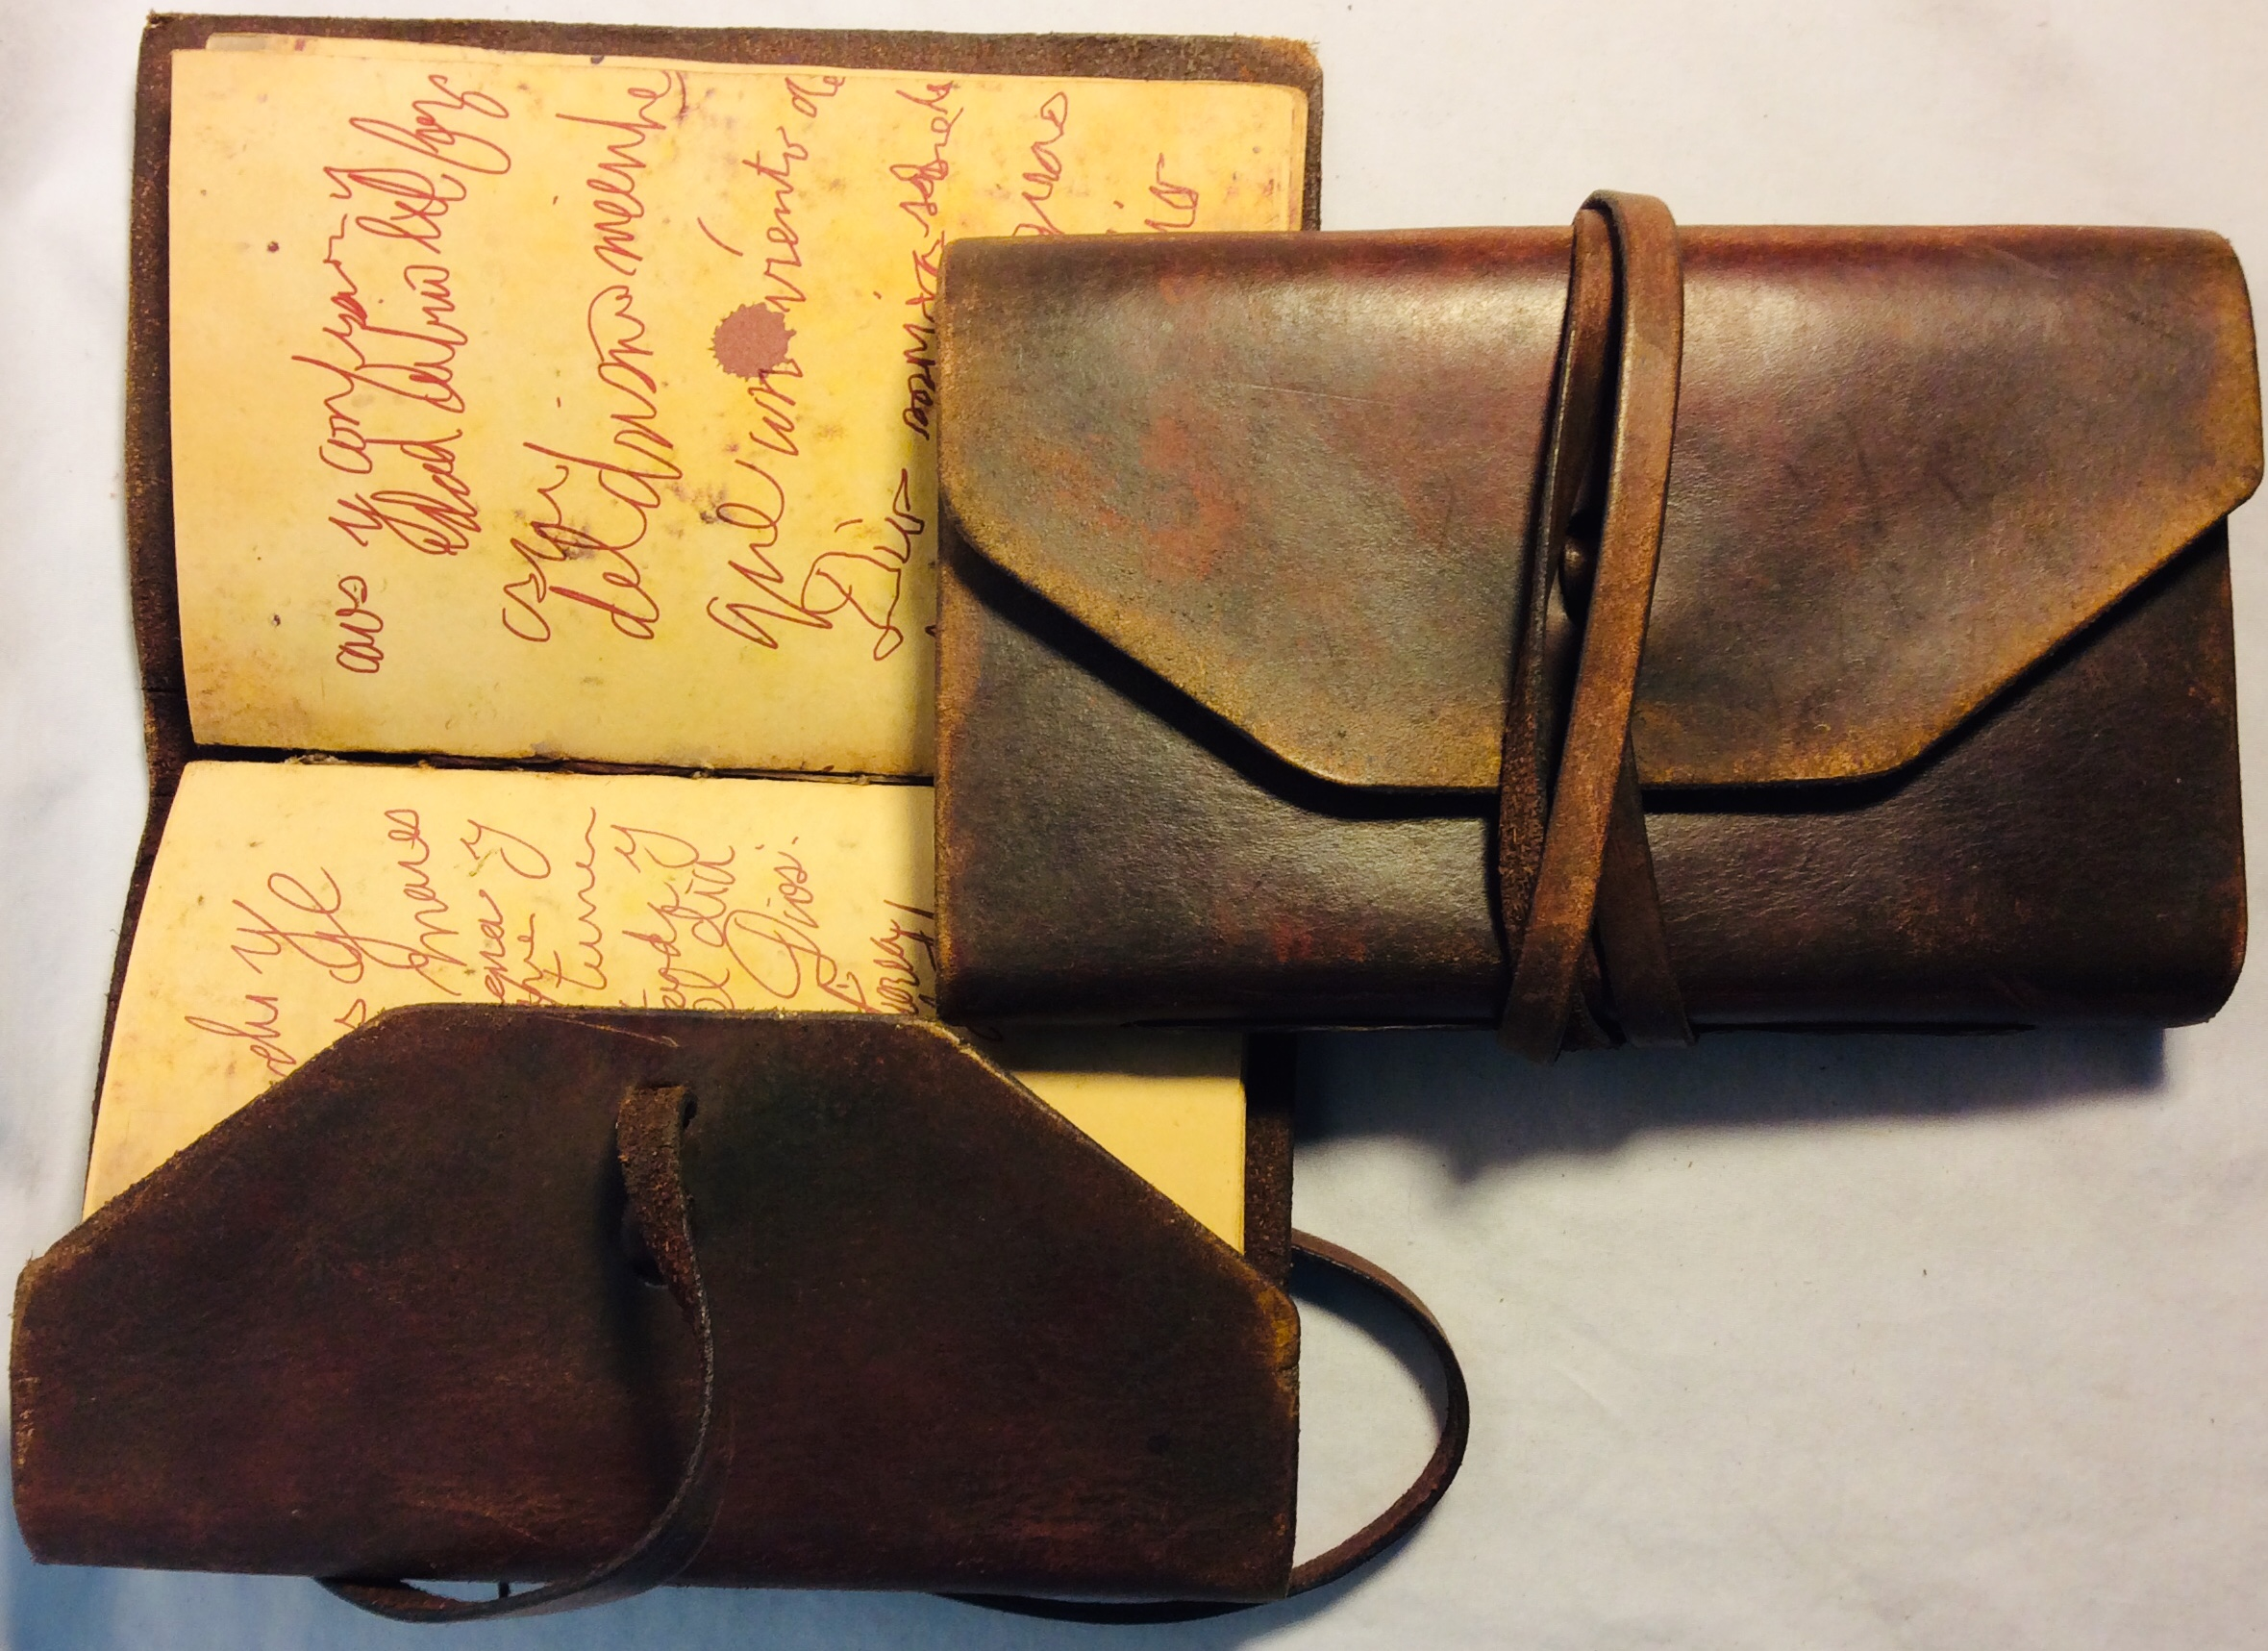 Aged brown leather journal with written pages in Spanish